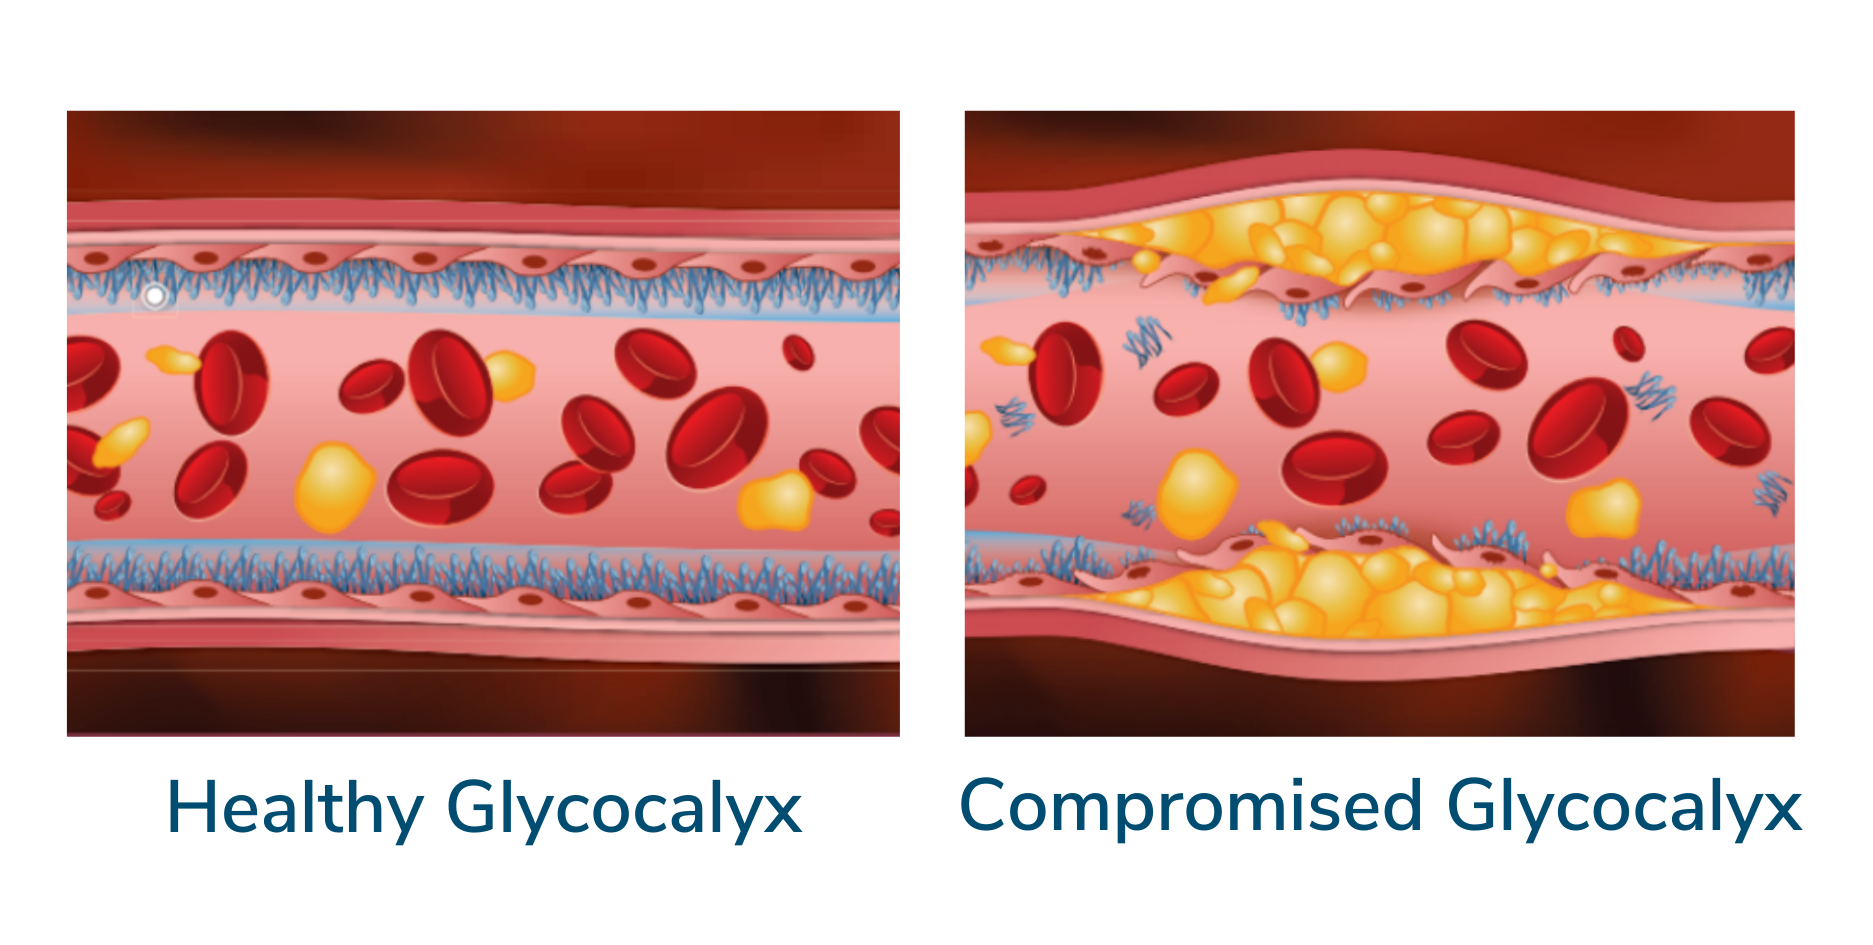 A healthy artery and its wall compared to a compromised artery with plaque buildup and glycocalyx degradation